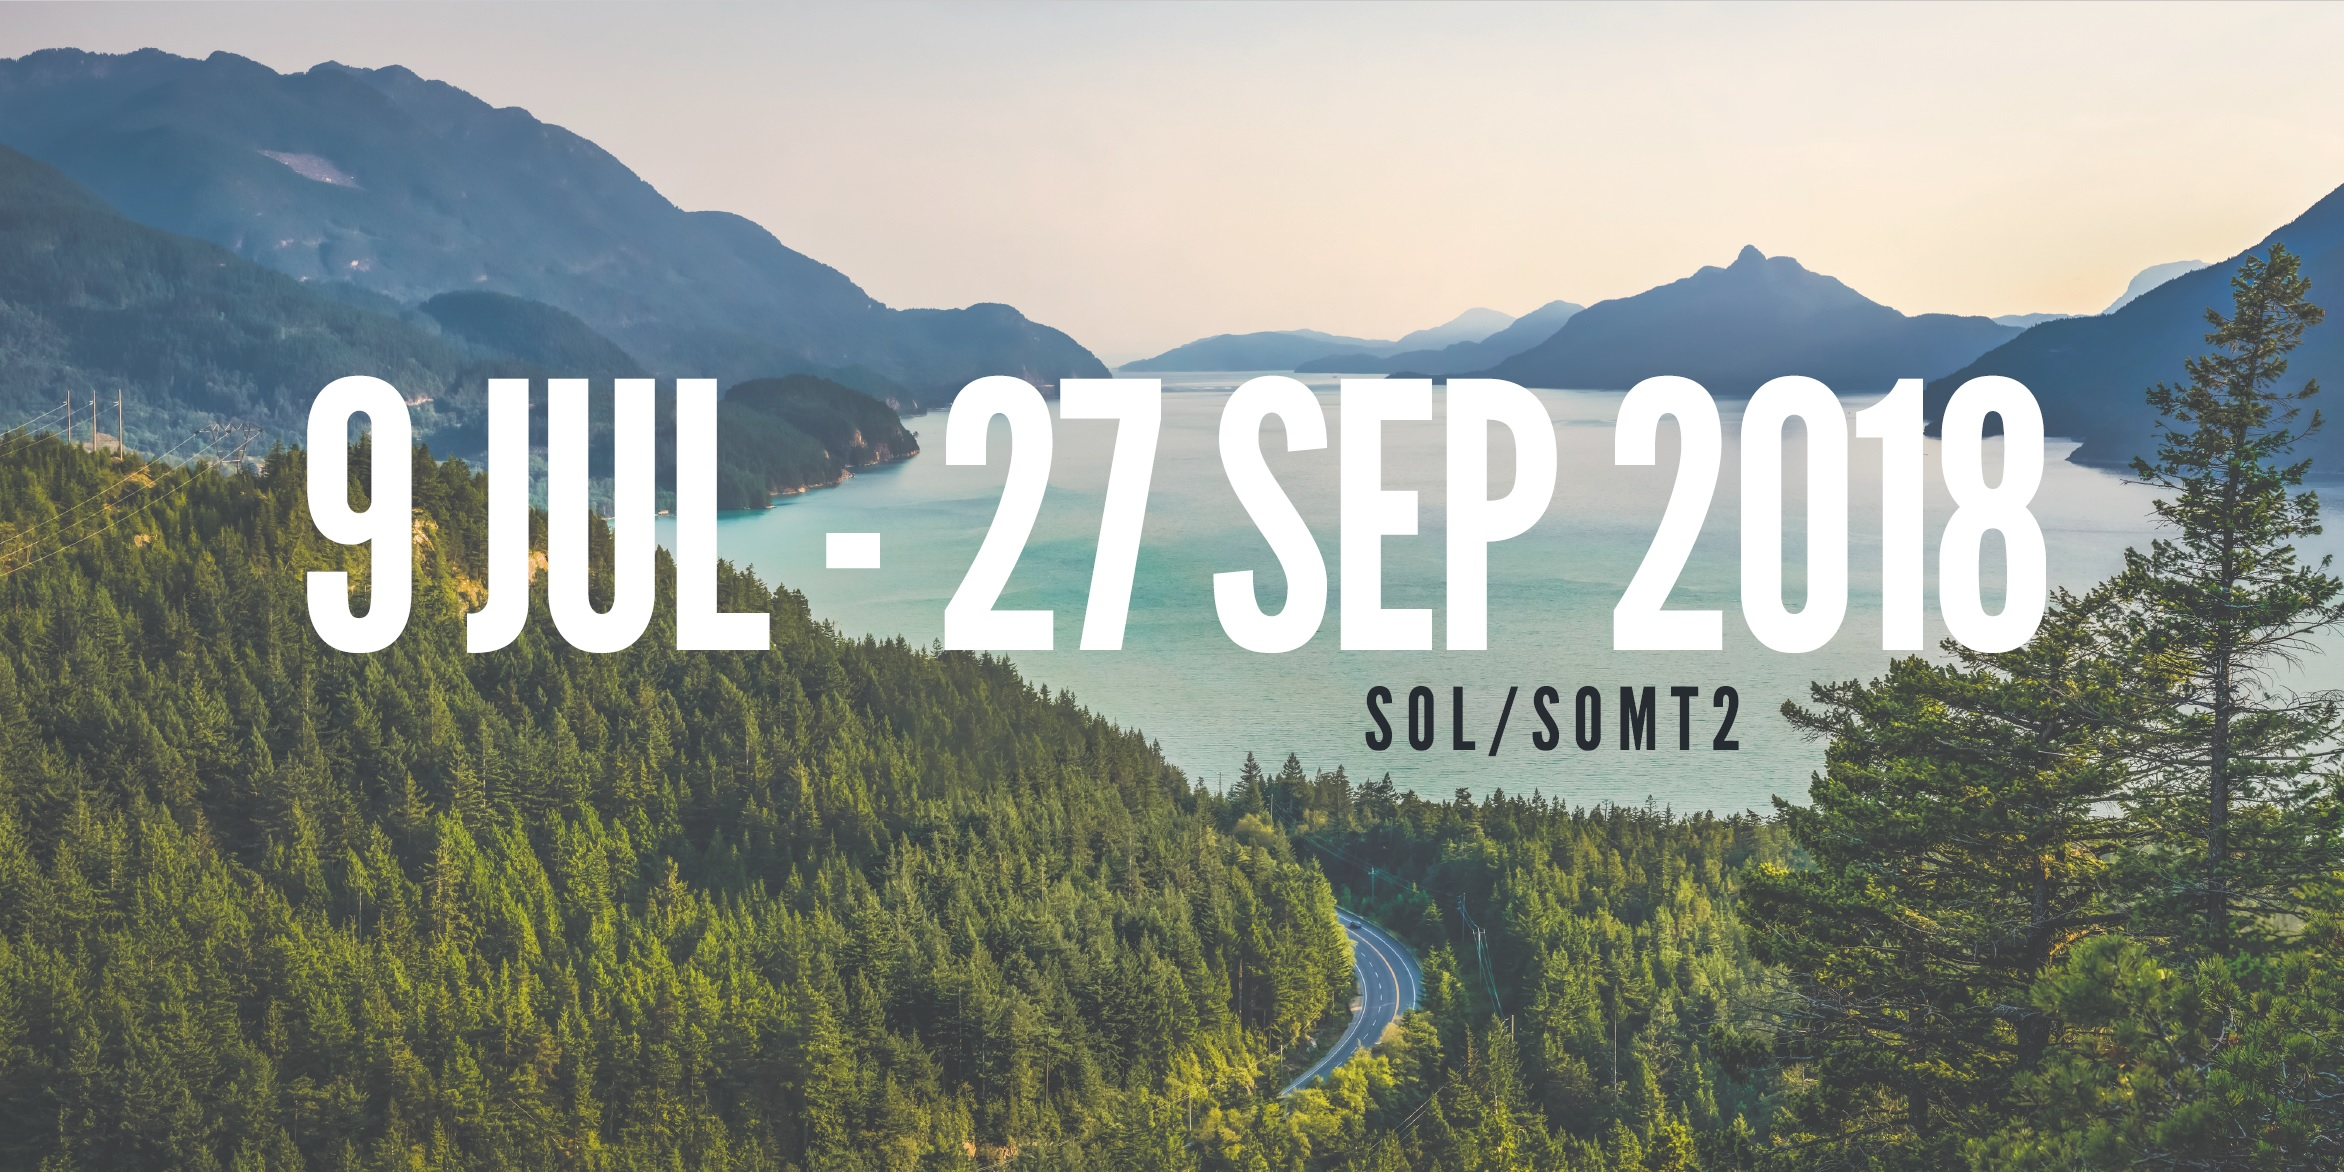 SOL 2018 & SOM Term 2 is open for registration! Sign up now!